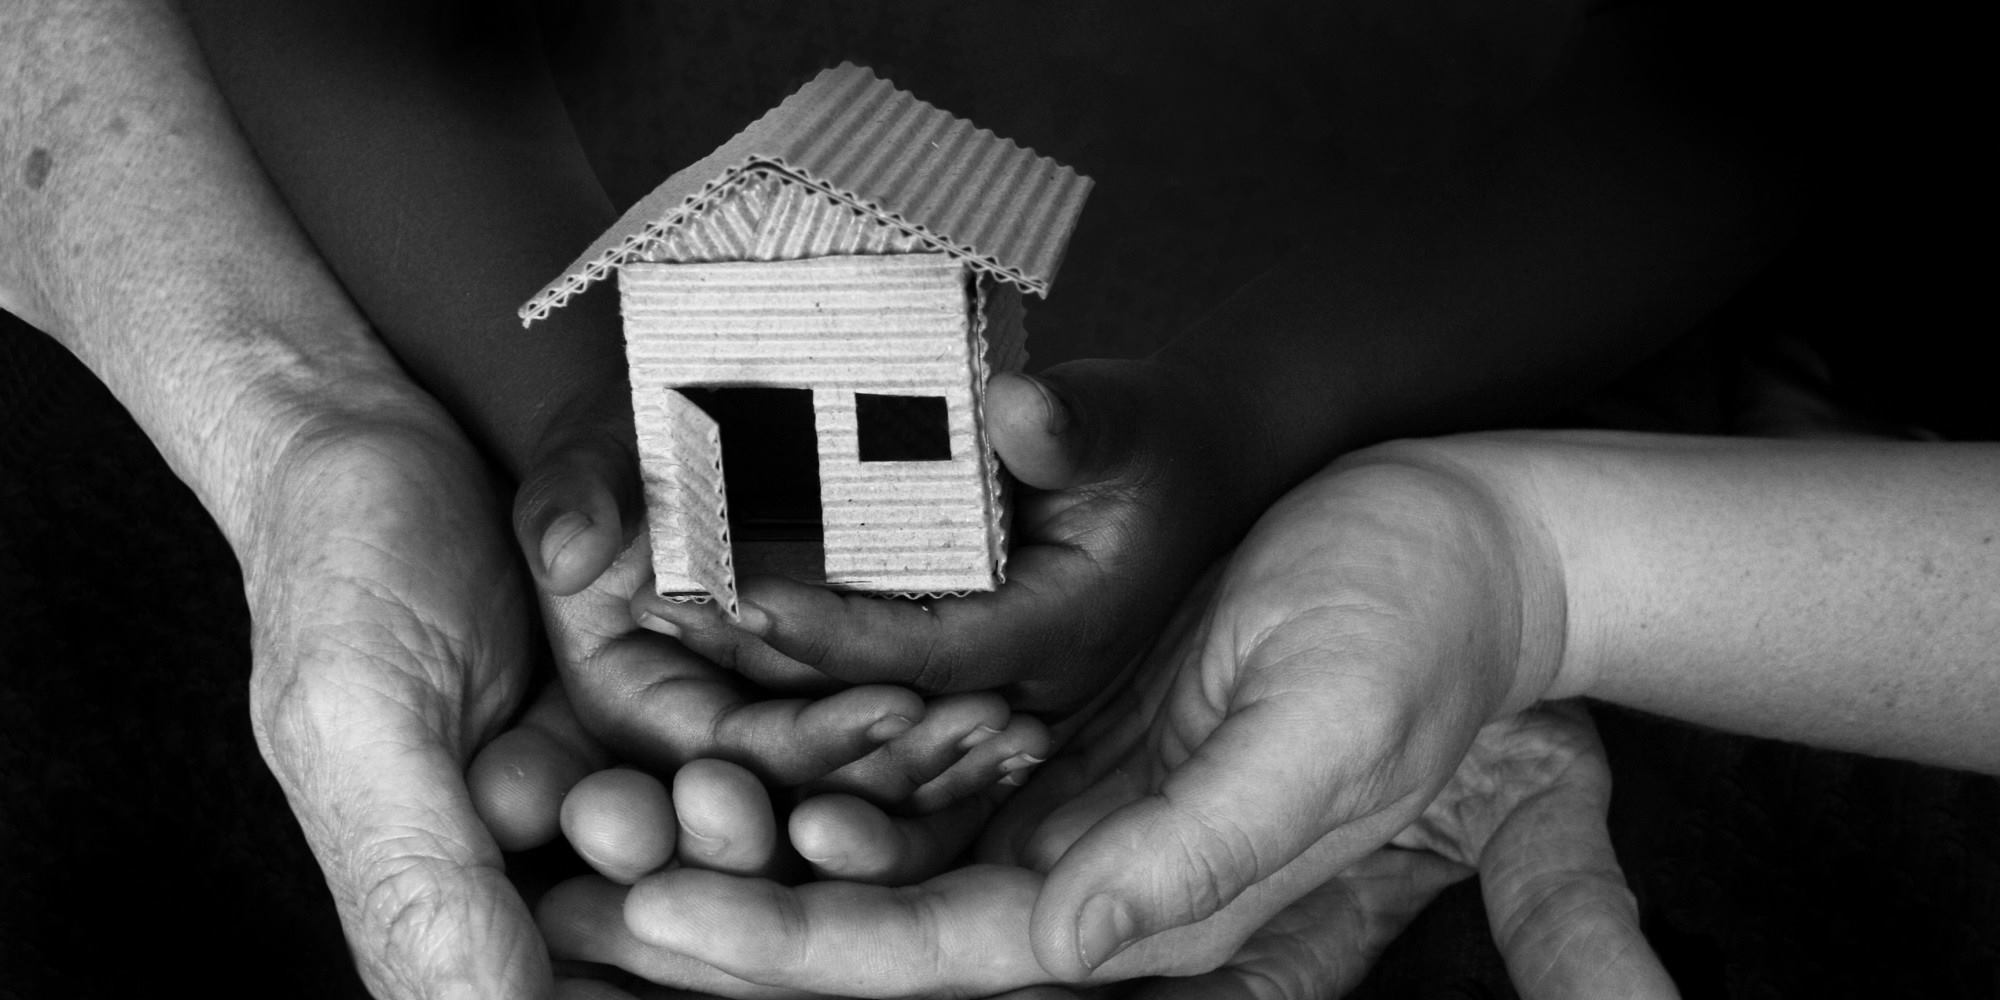 Image of multiple hands holding a home.